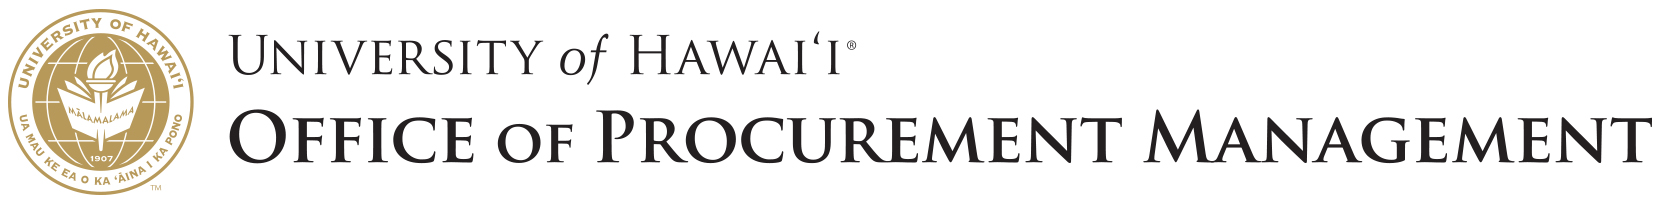 University of Hawaiʻi Office of Procurement Management